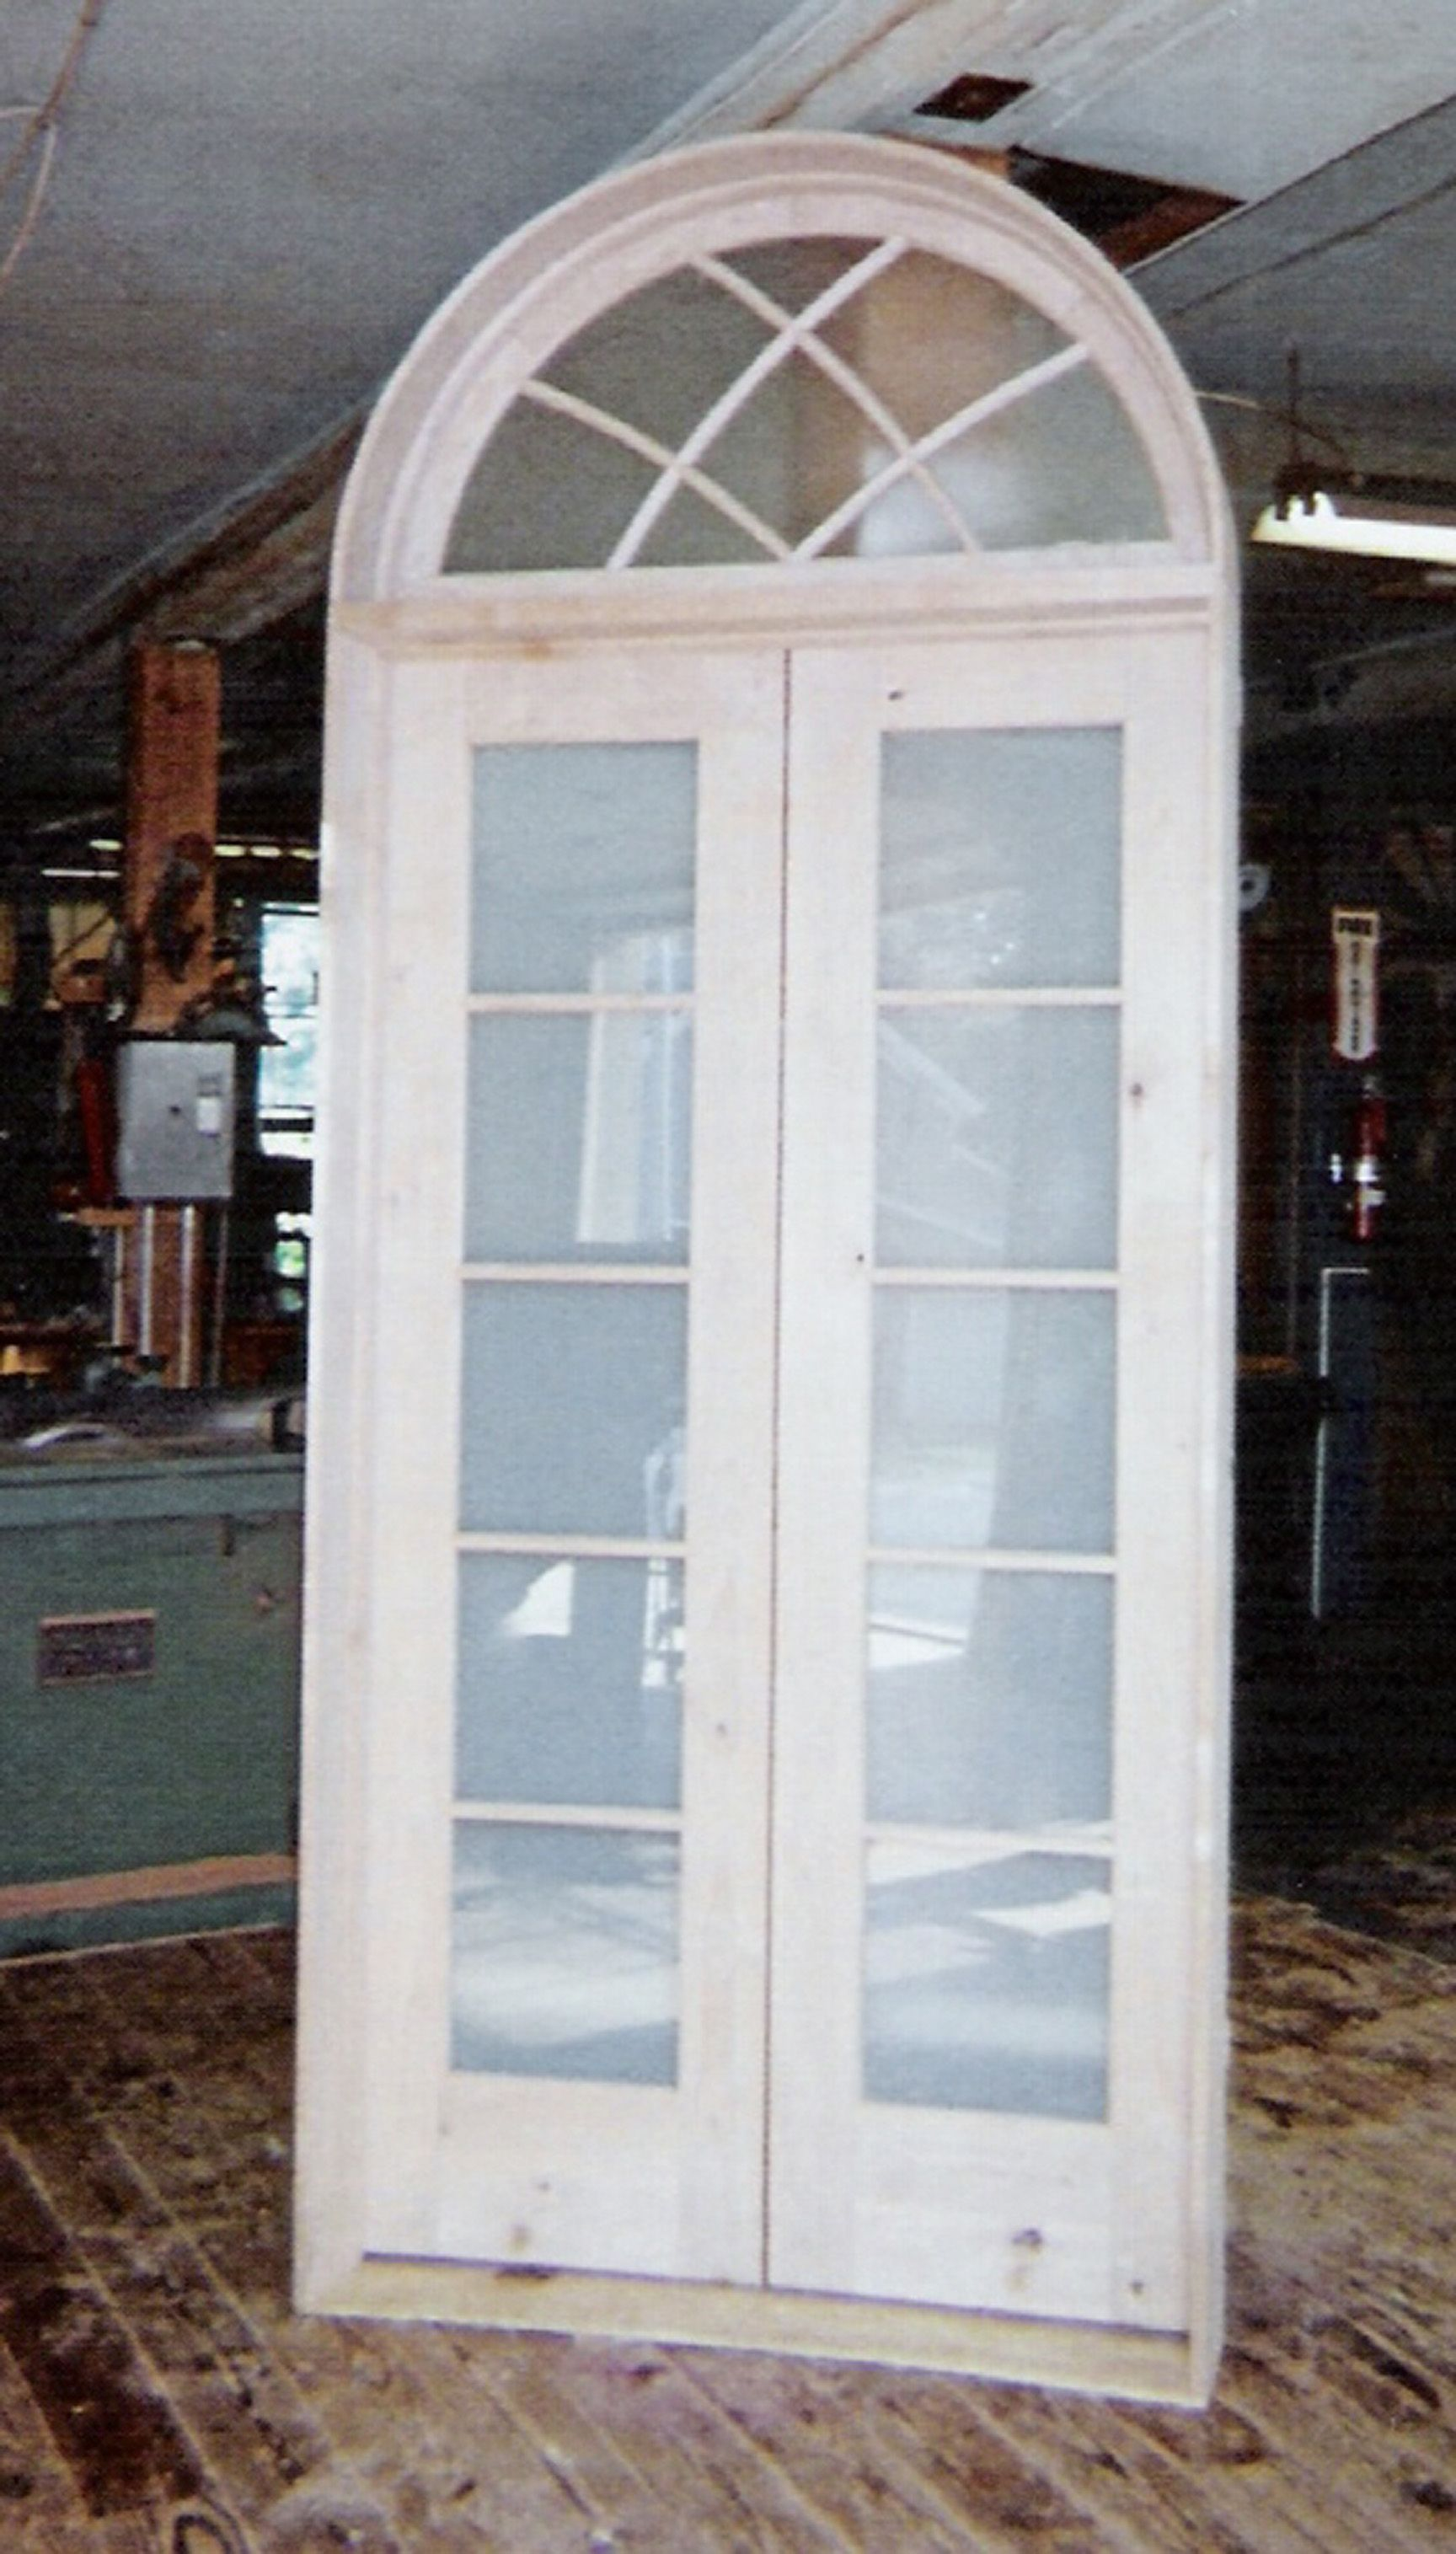 3031 #61483C  French Doors Bedroom Doors Double Doors Wood Doors Glass Doors Forward picture/photo Arched Doors With Glass 42191728